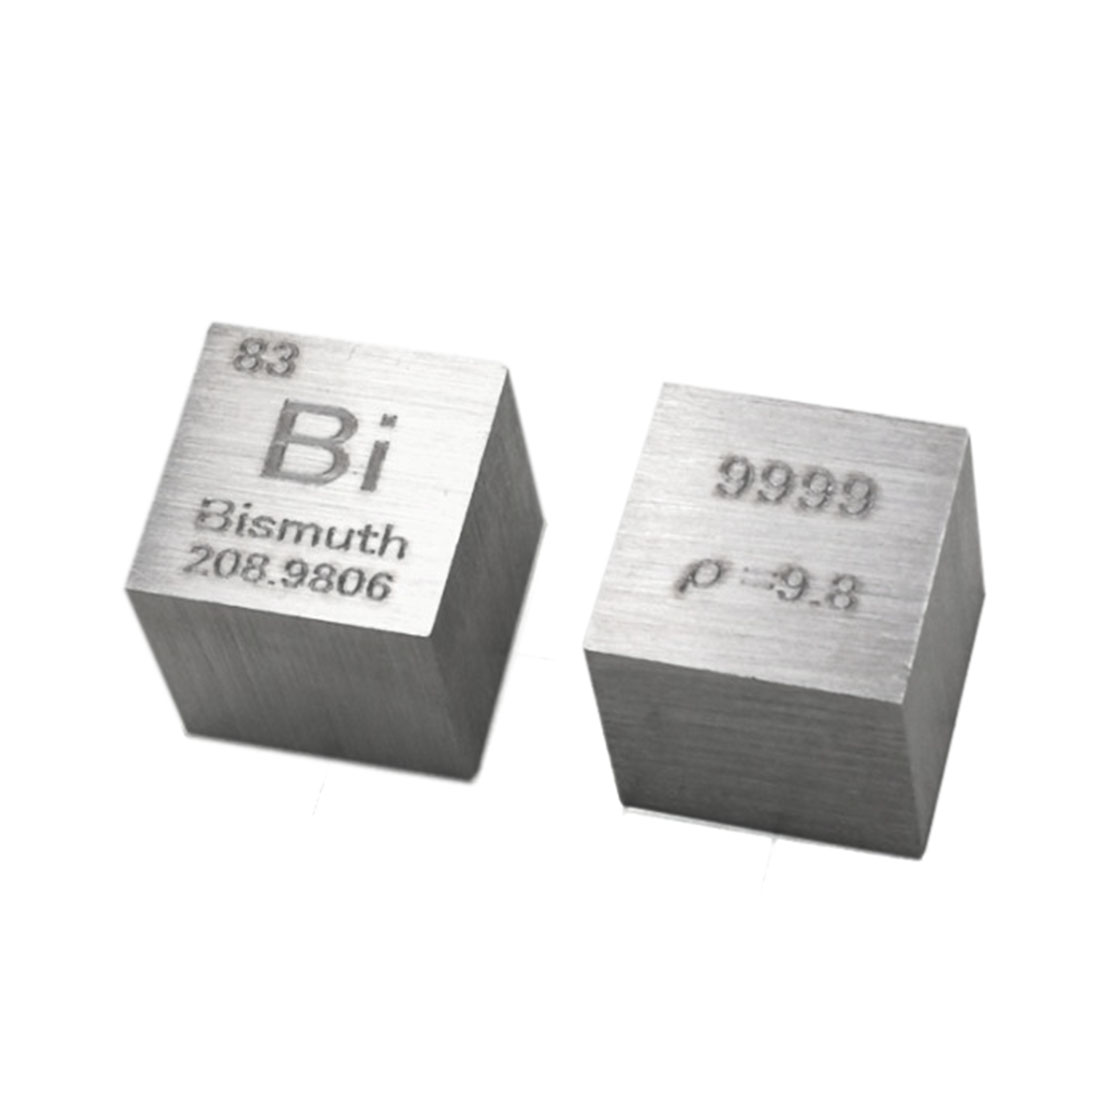 High Pure 10 X 10 X 10mm Wiredrawing Bismuth Cube Periodic Table Of Elements Cube For Study Education Collection(Bi≥99.9%)